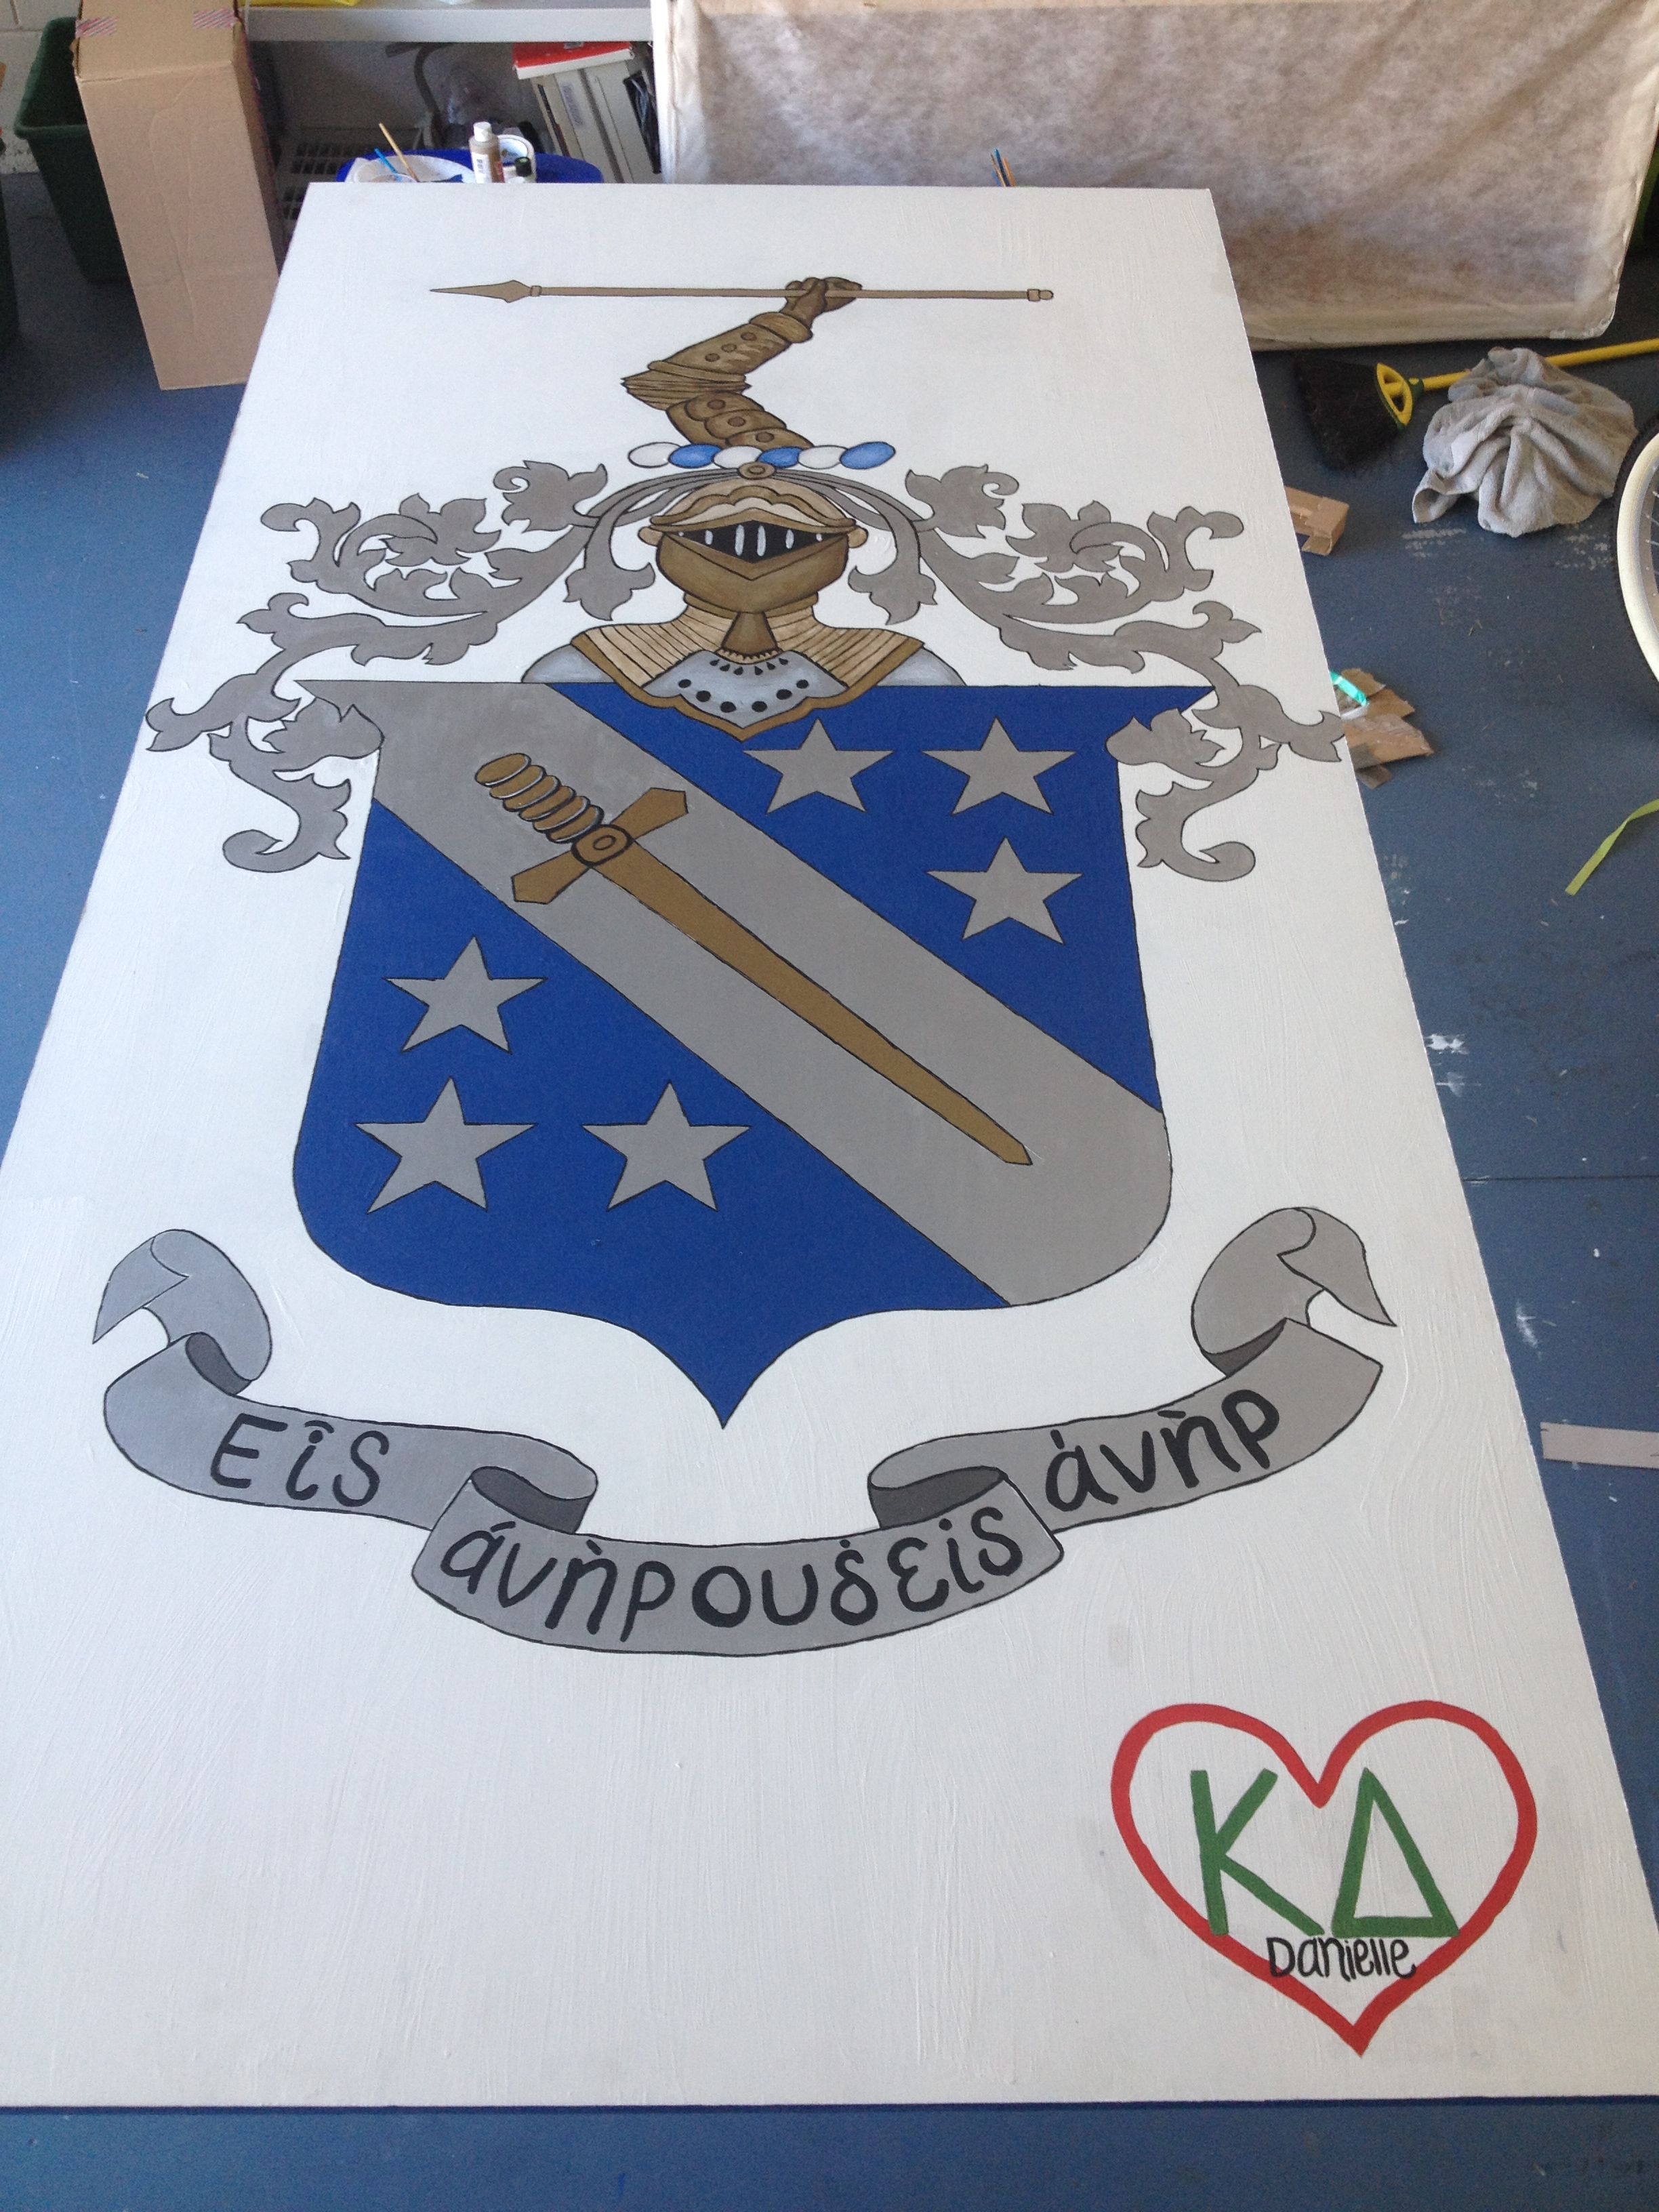 phi delta theta fraternity crest beer pong table sweetheart idea